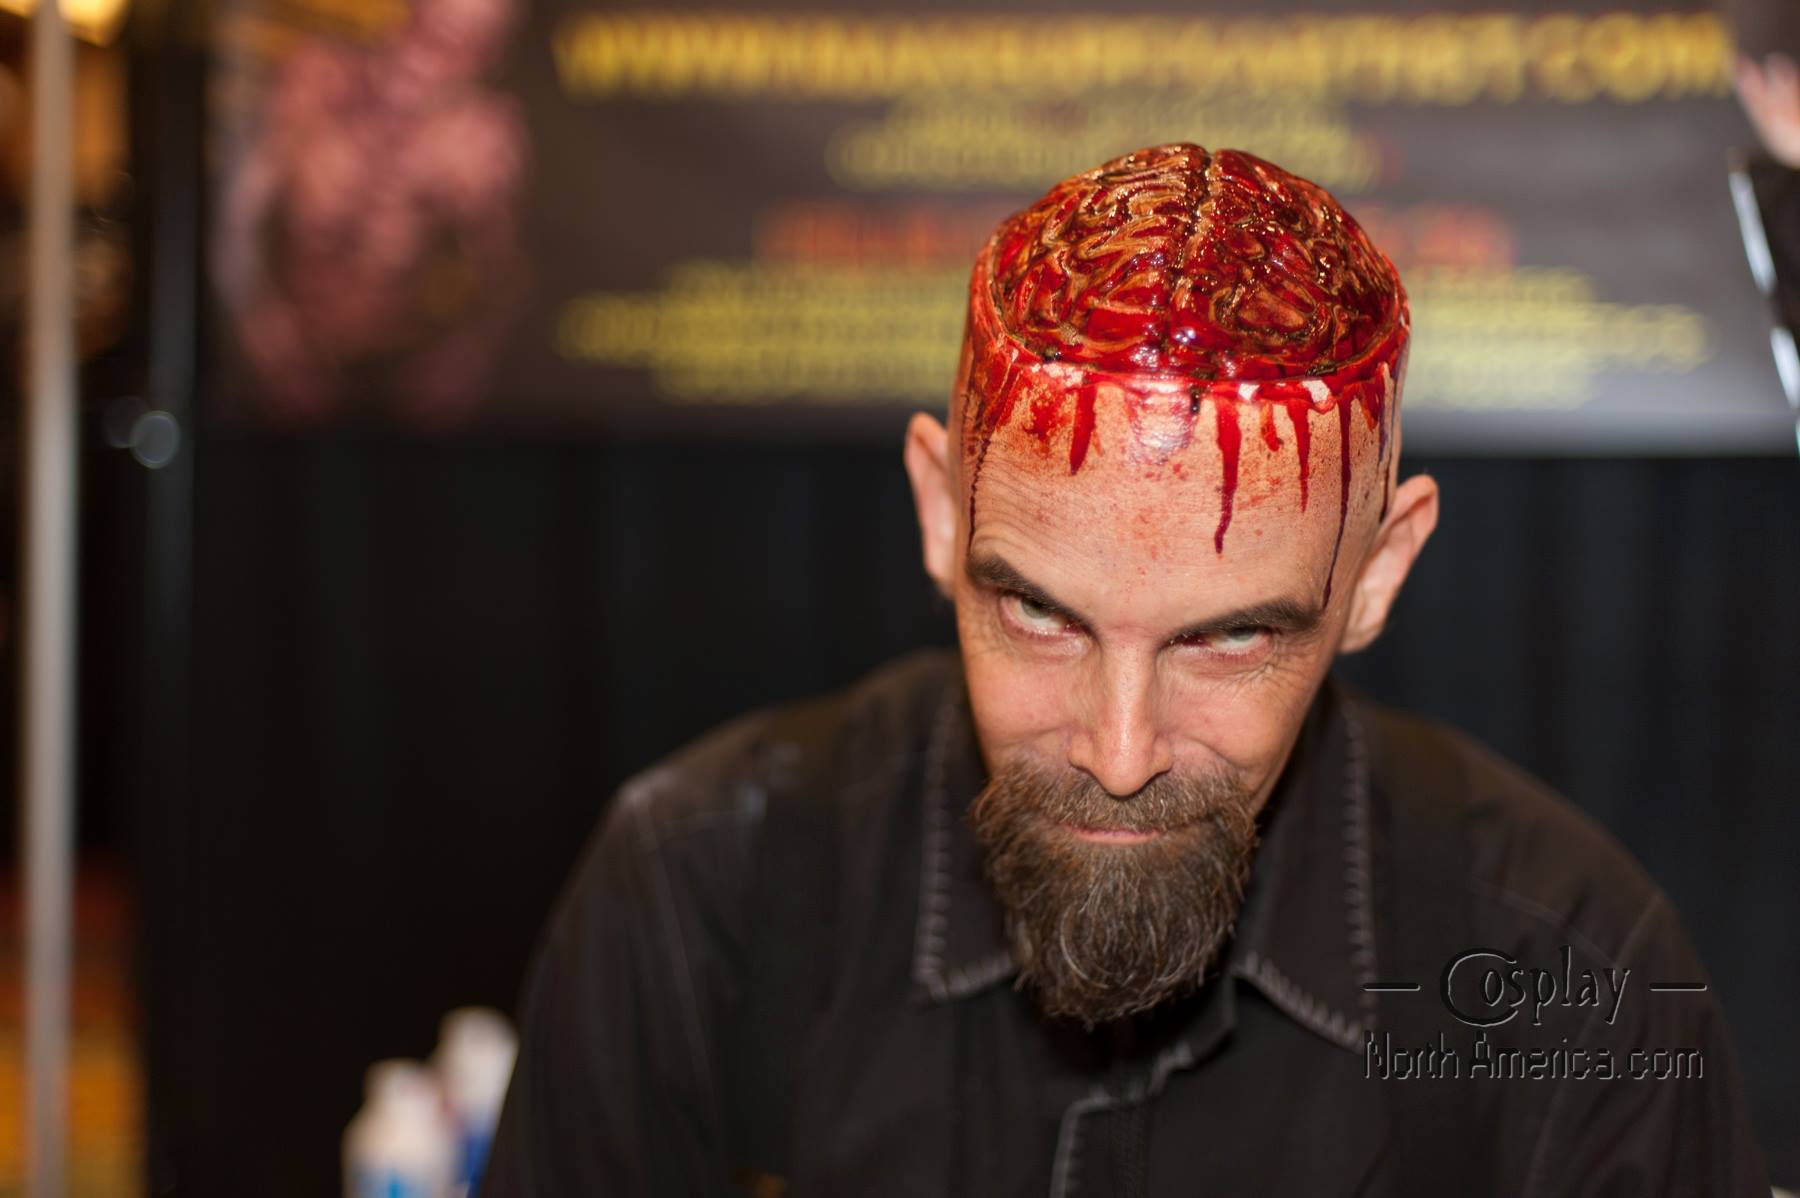 Foam latex,iso colors.Crypticon 2015